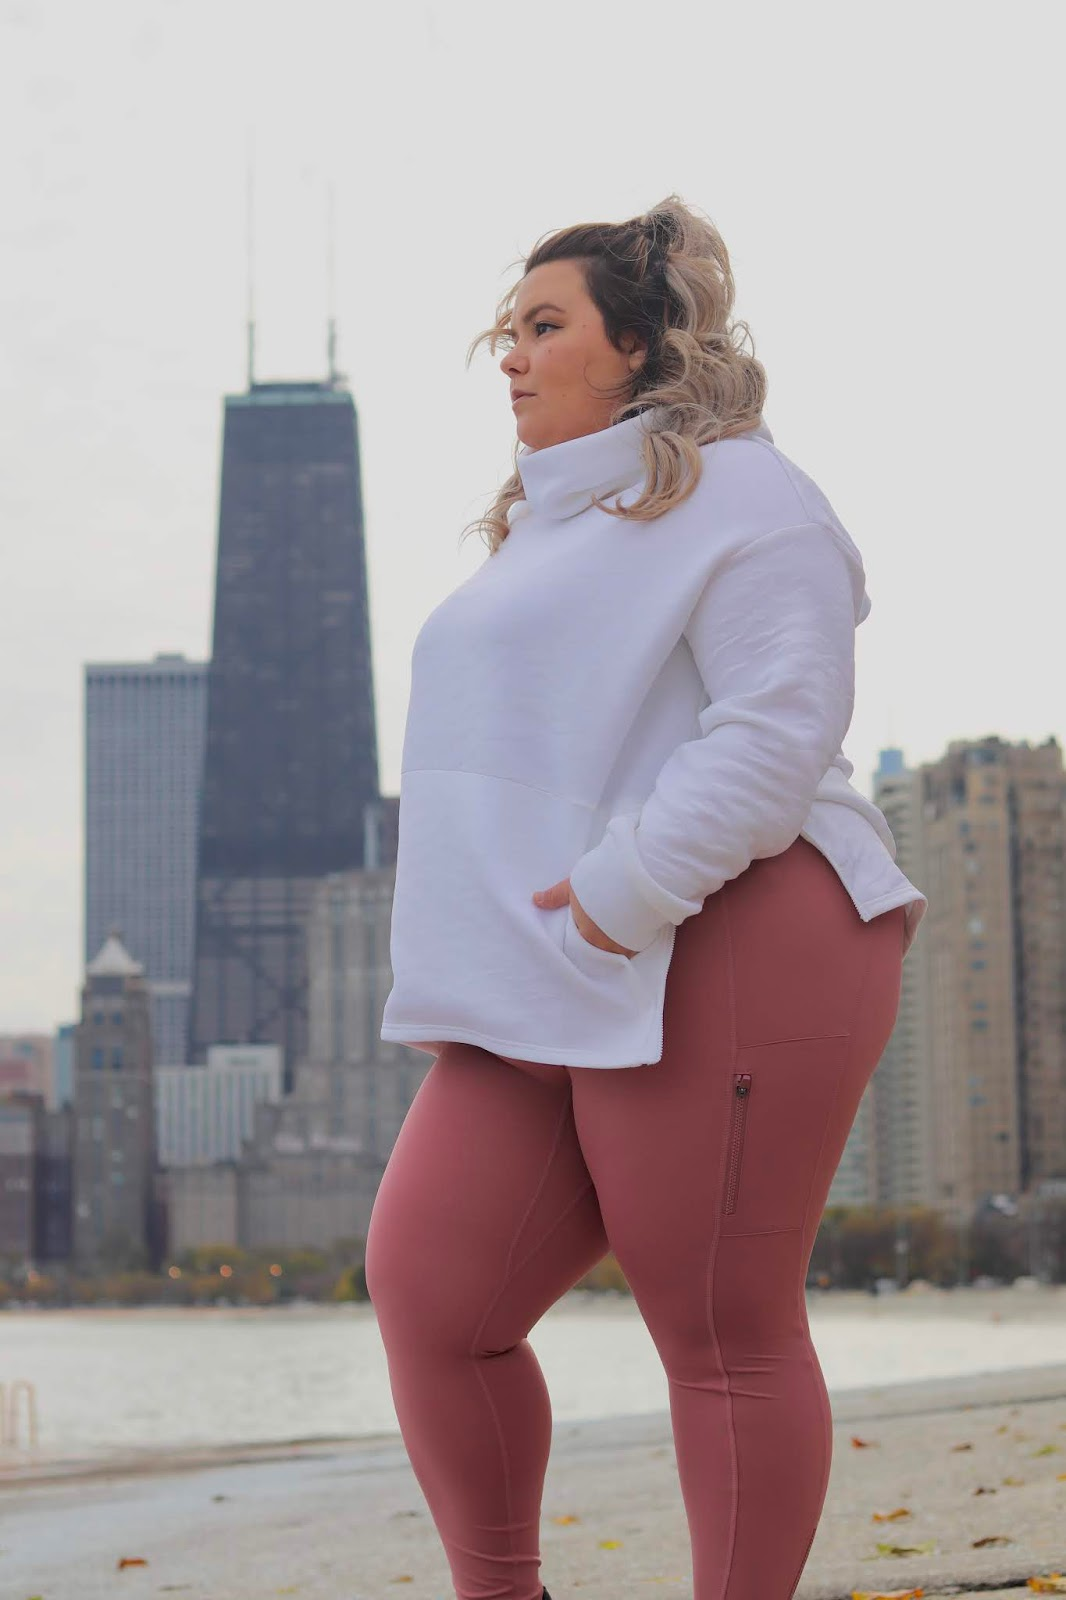 Chicago Plus Size Petite Fashion Blogger, influencer, YouTuber, and model Natalie Craig, of Natalie in the City, reviews Fabletics winter workout attire.